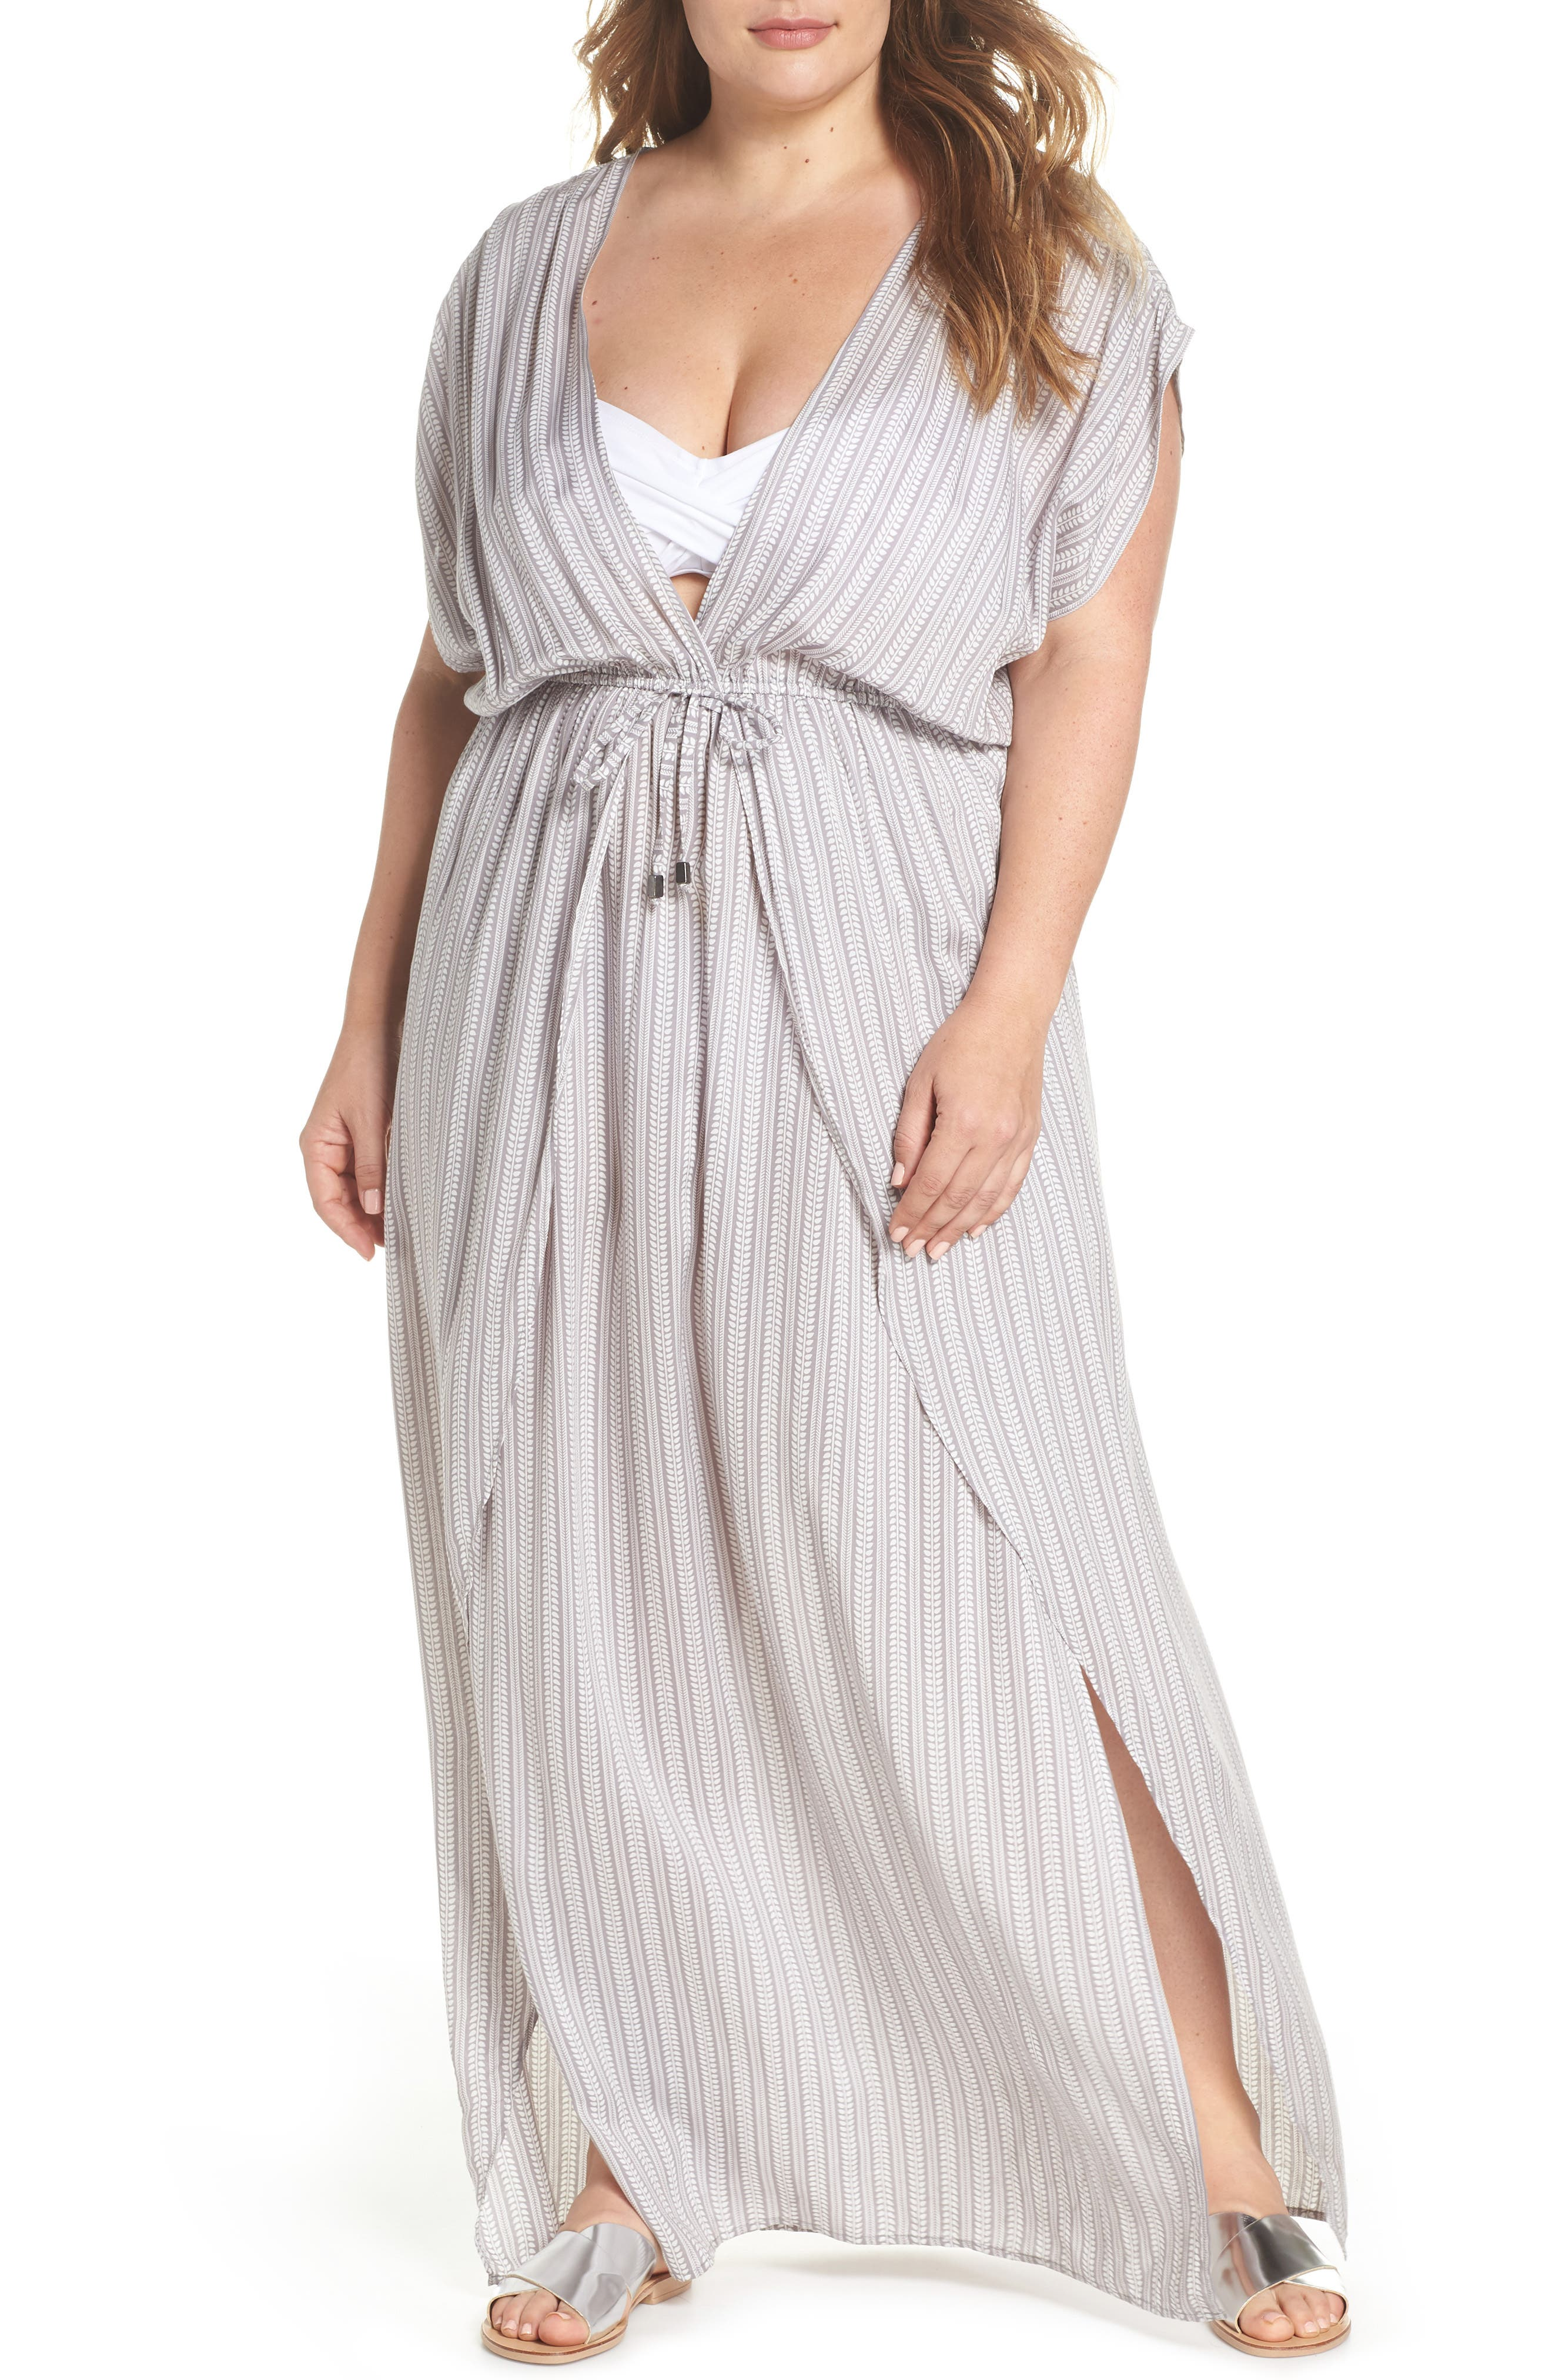 Alternate Image 1 Selected - Elan Wrap Maxi Cover-Up Dress (Plus Size)